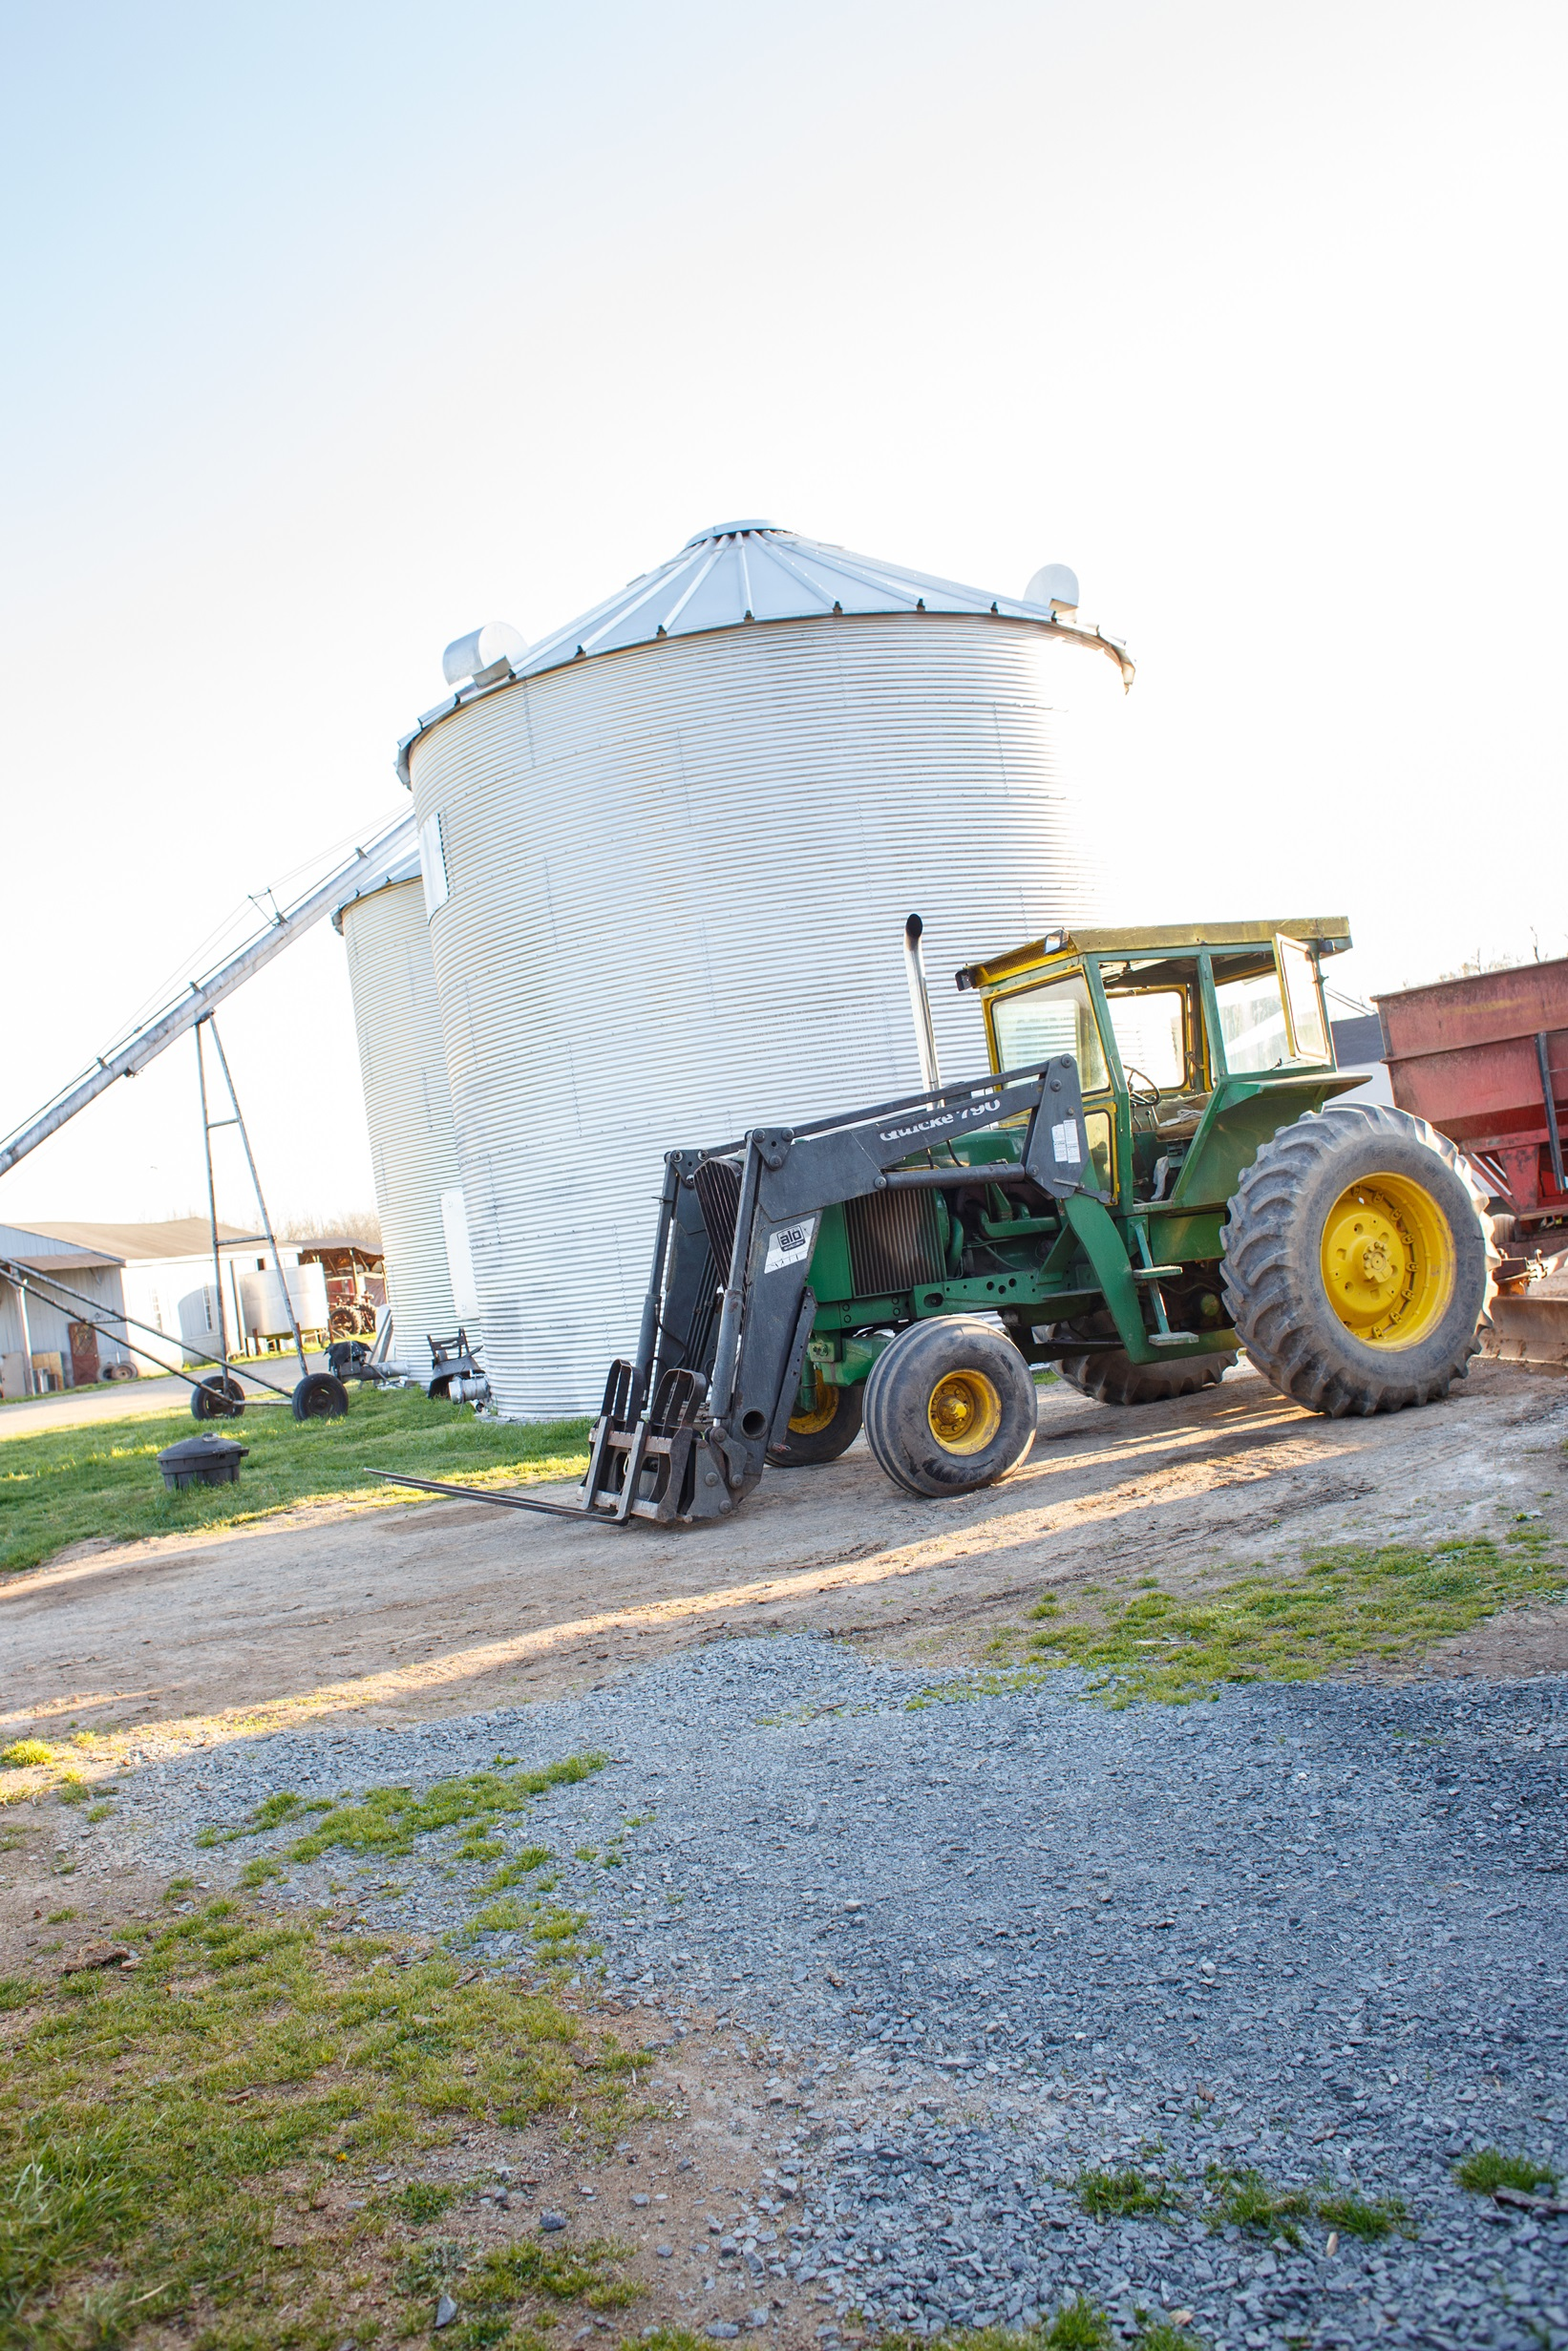 Our grain silos and tractor